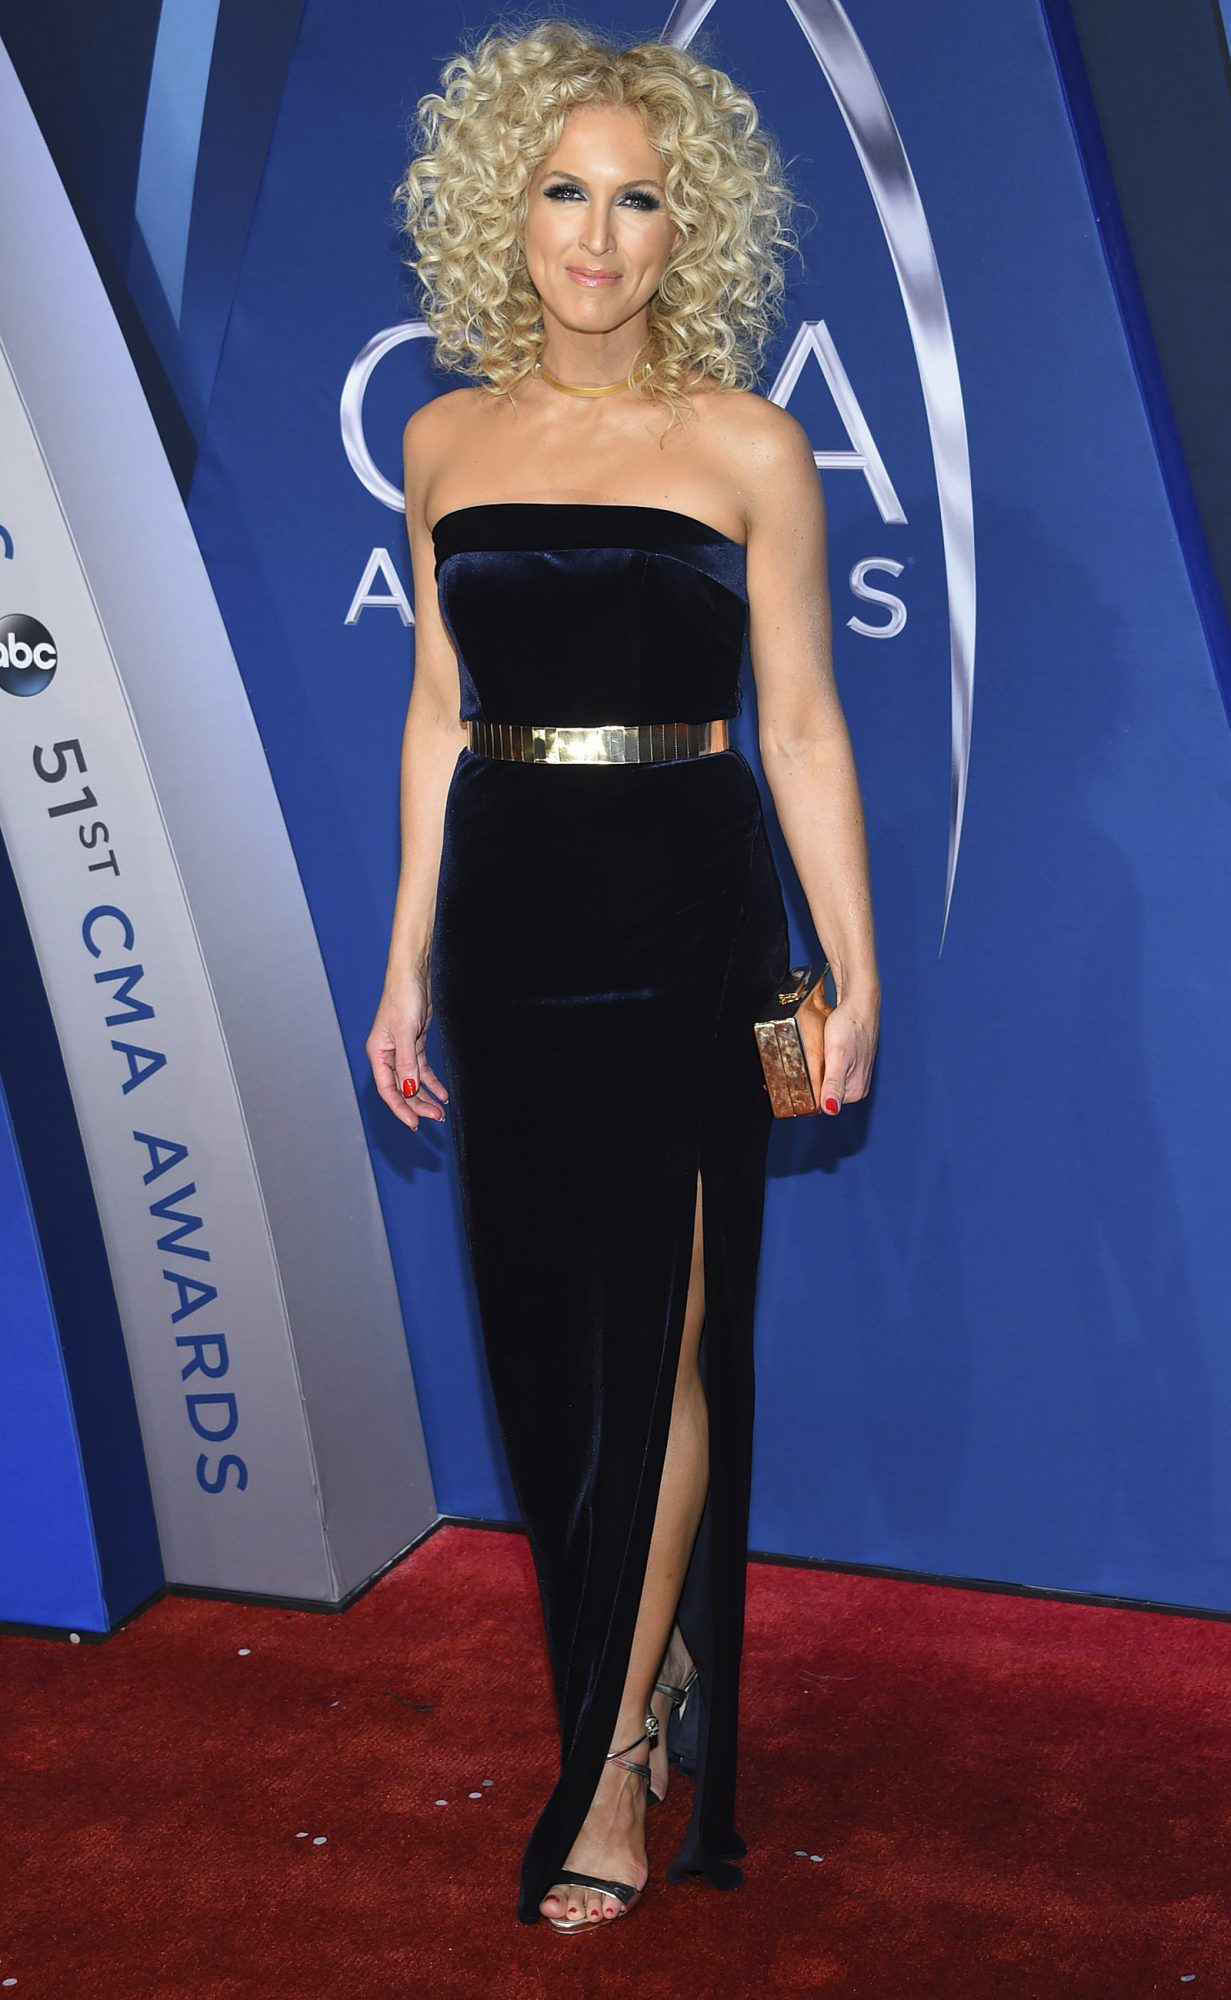 CMA Awards 2013 Best and Worst Dressed: Taylor Swift